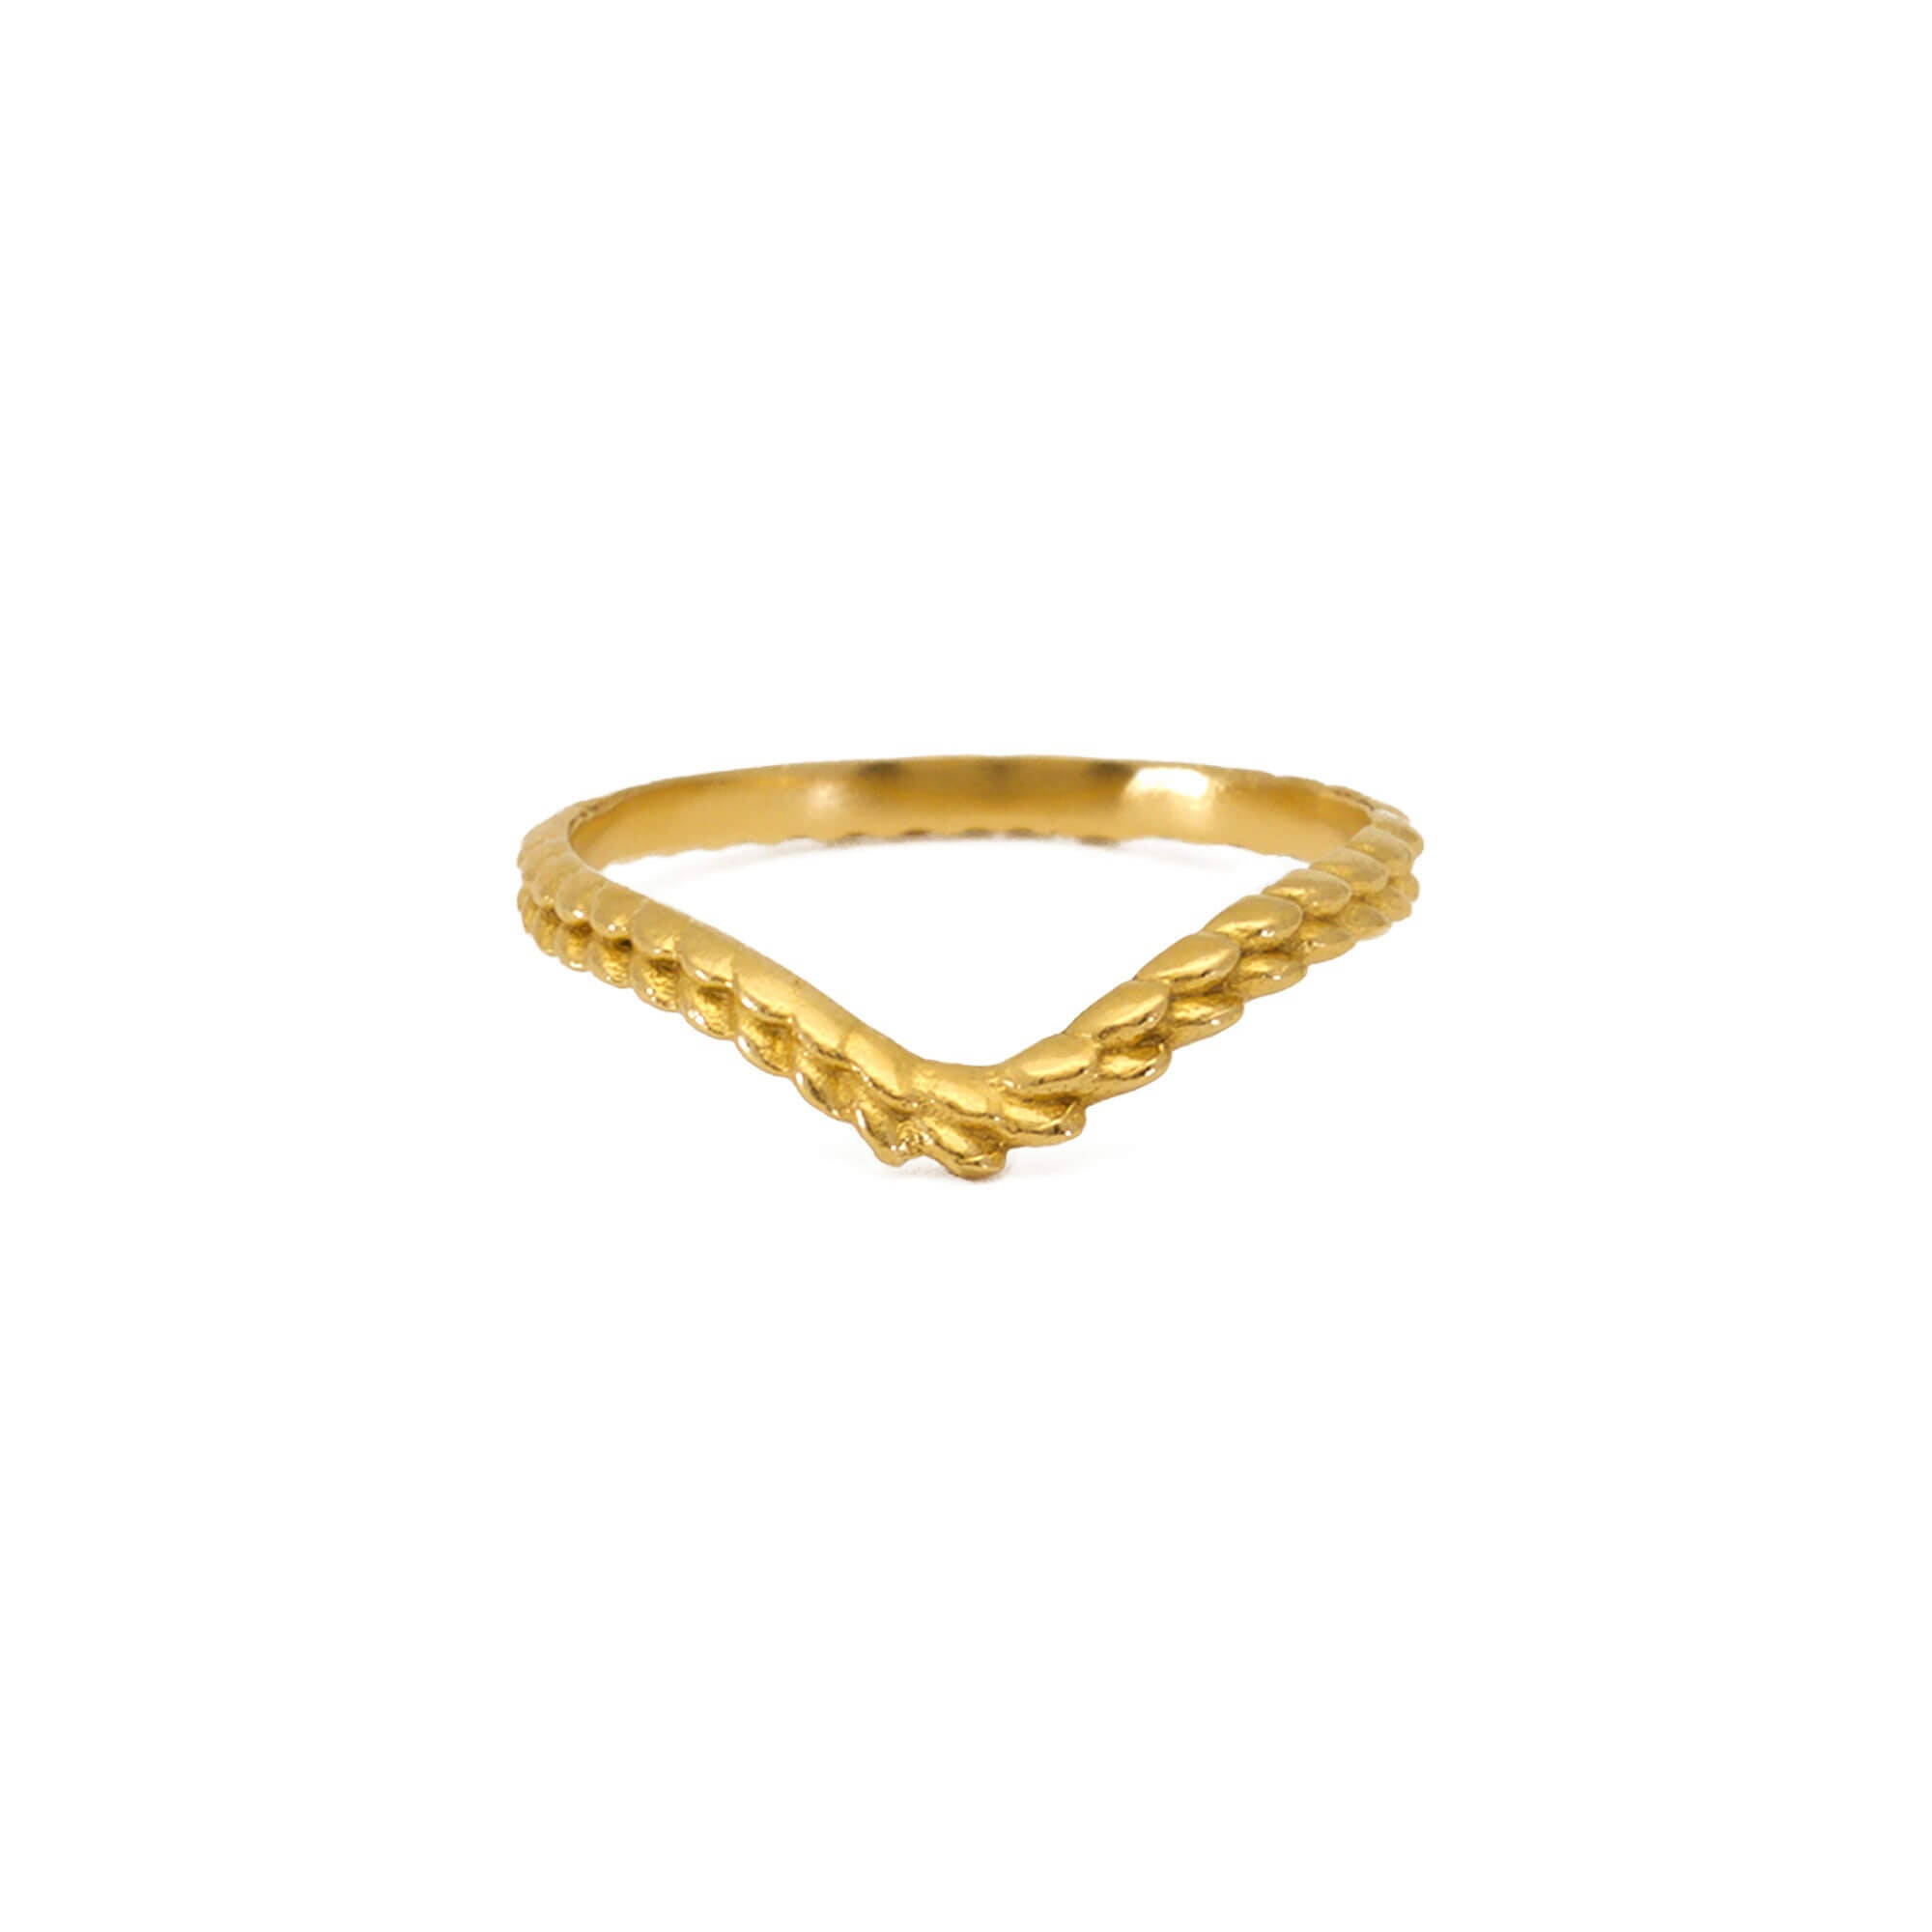 Tagmata Yellow Gold Ring